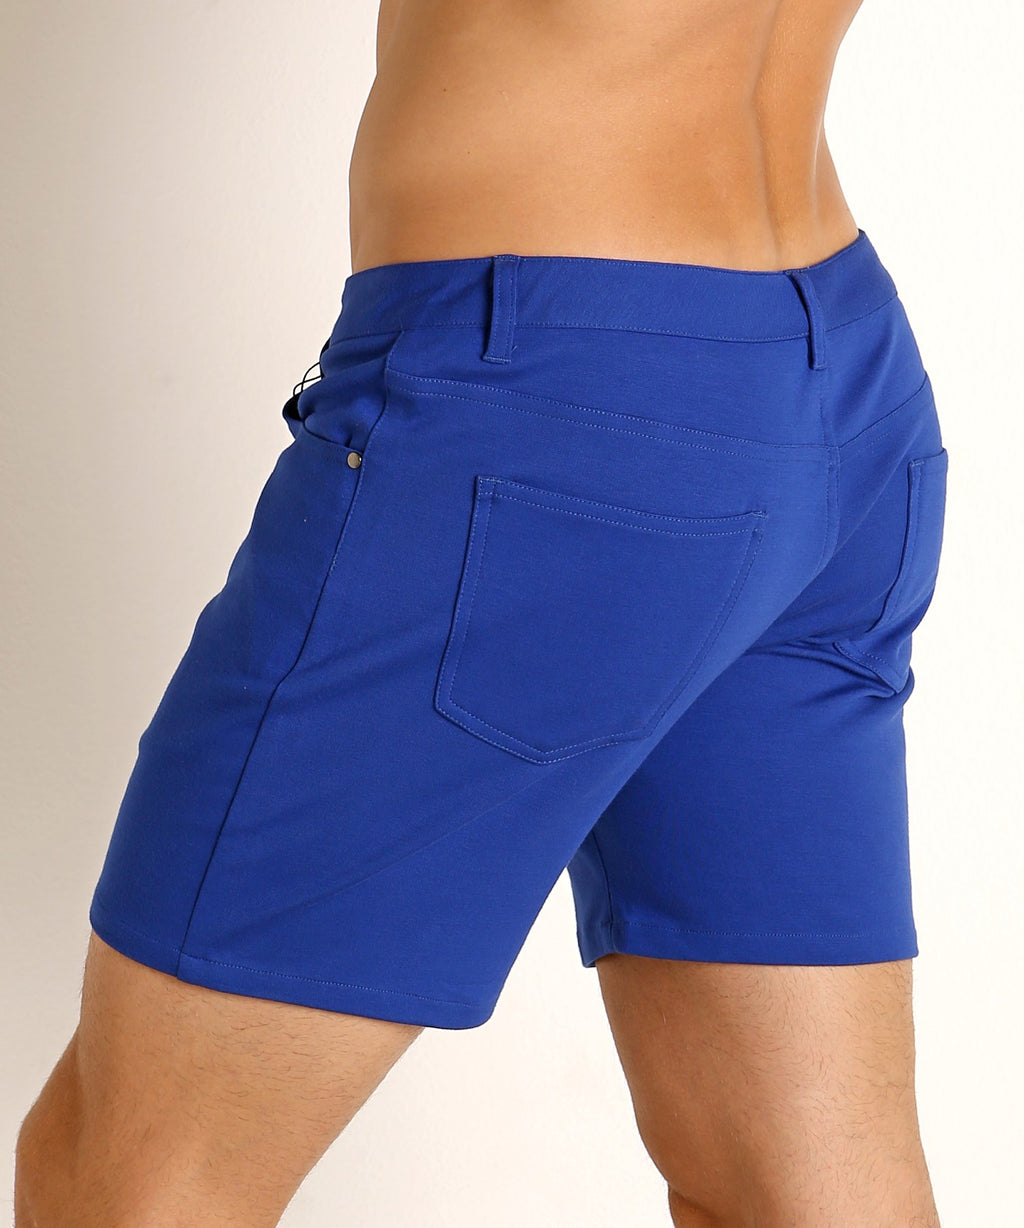 "Stretch Knit Shorts (5"" inseam) (Azure Blue)"